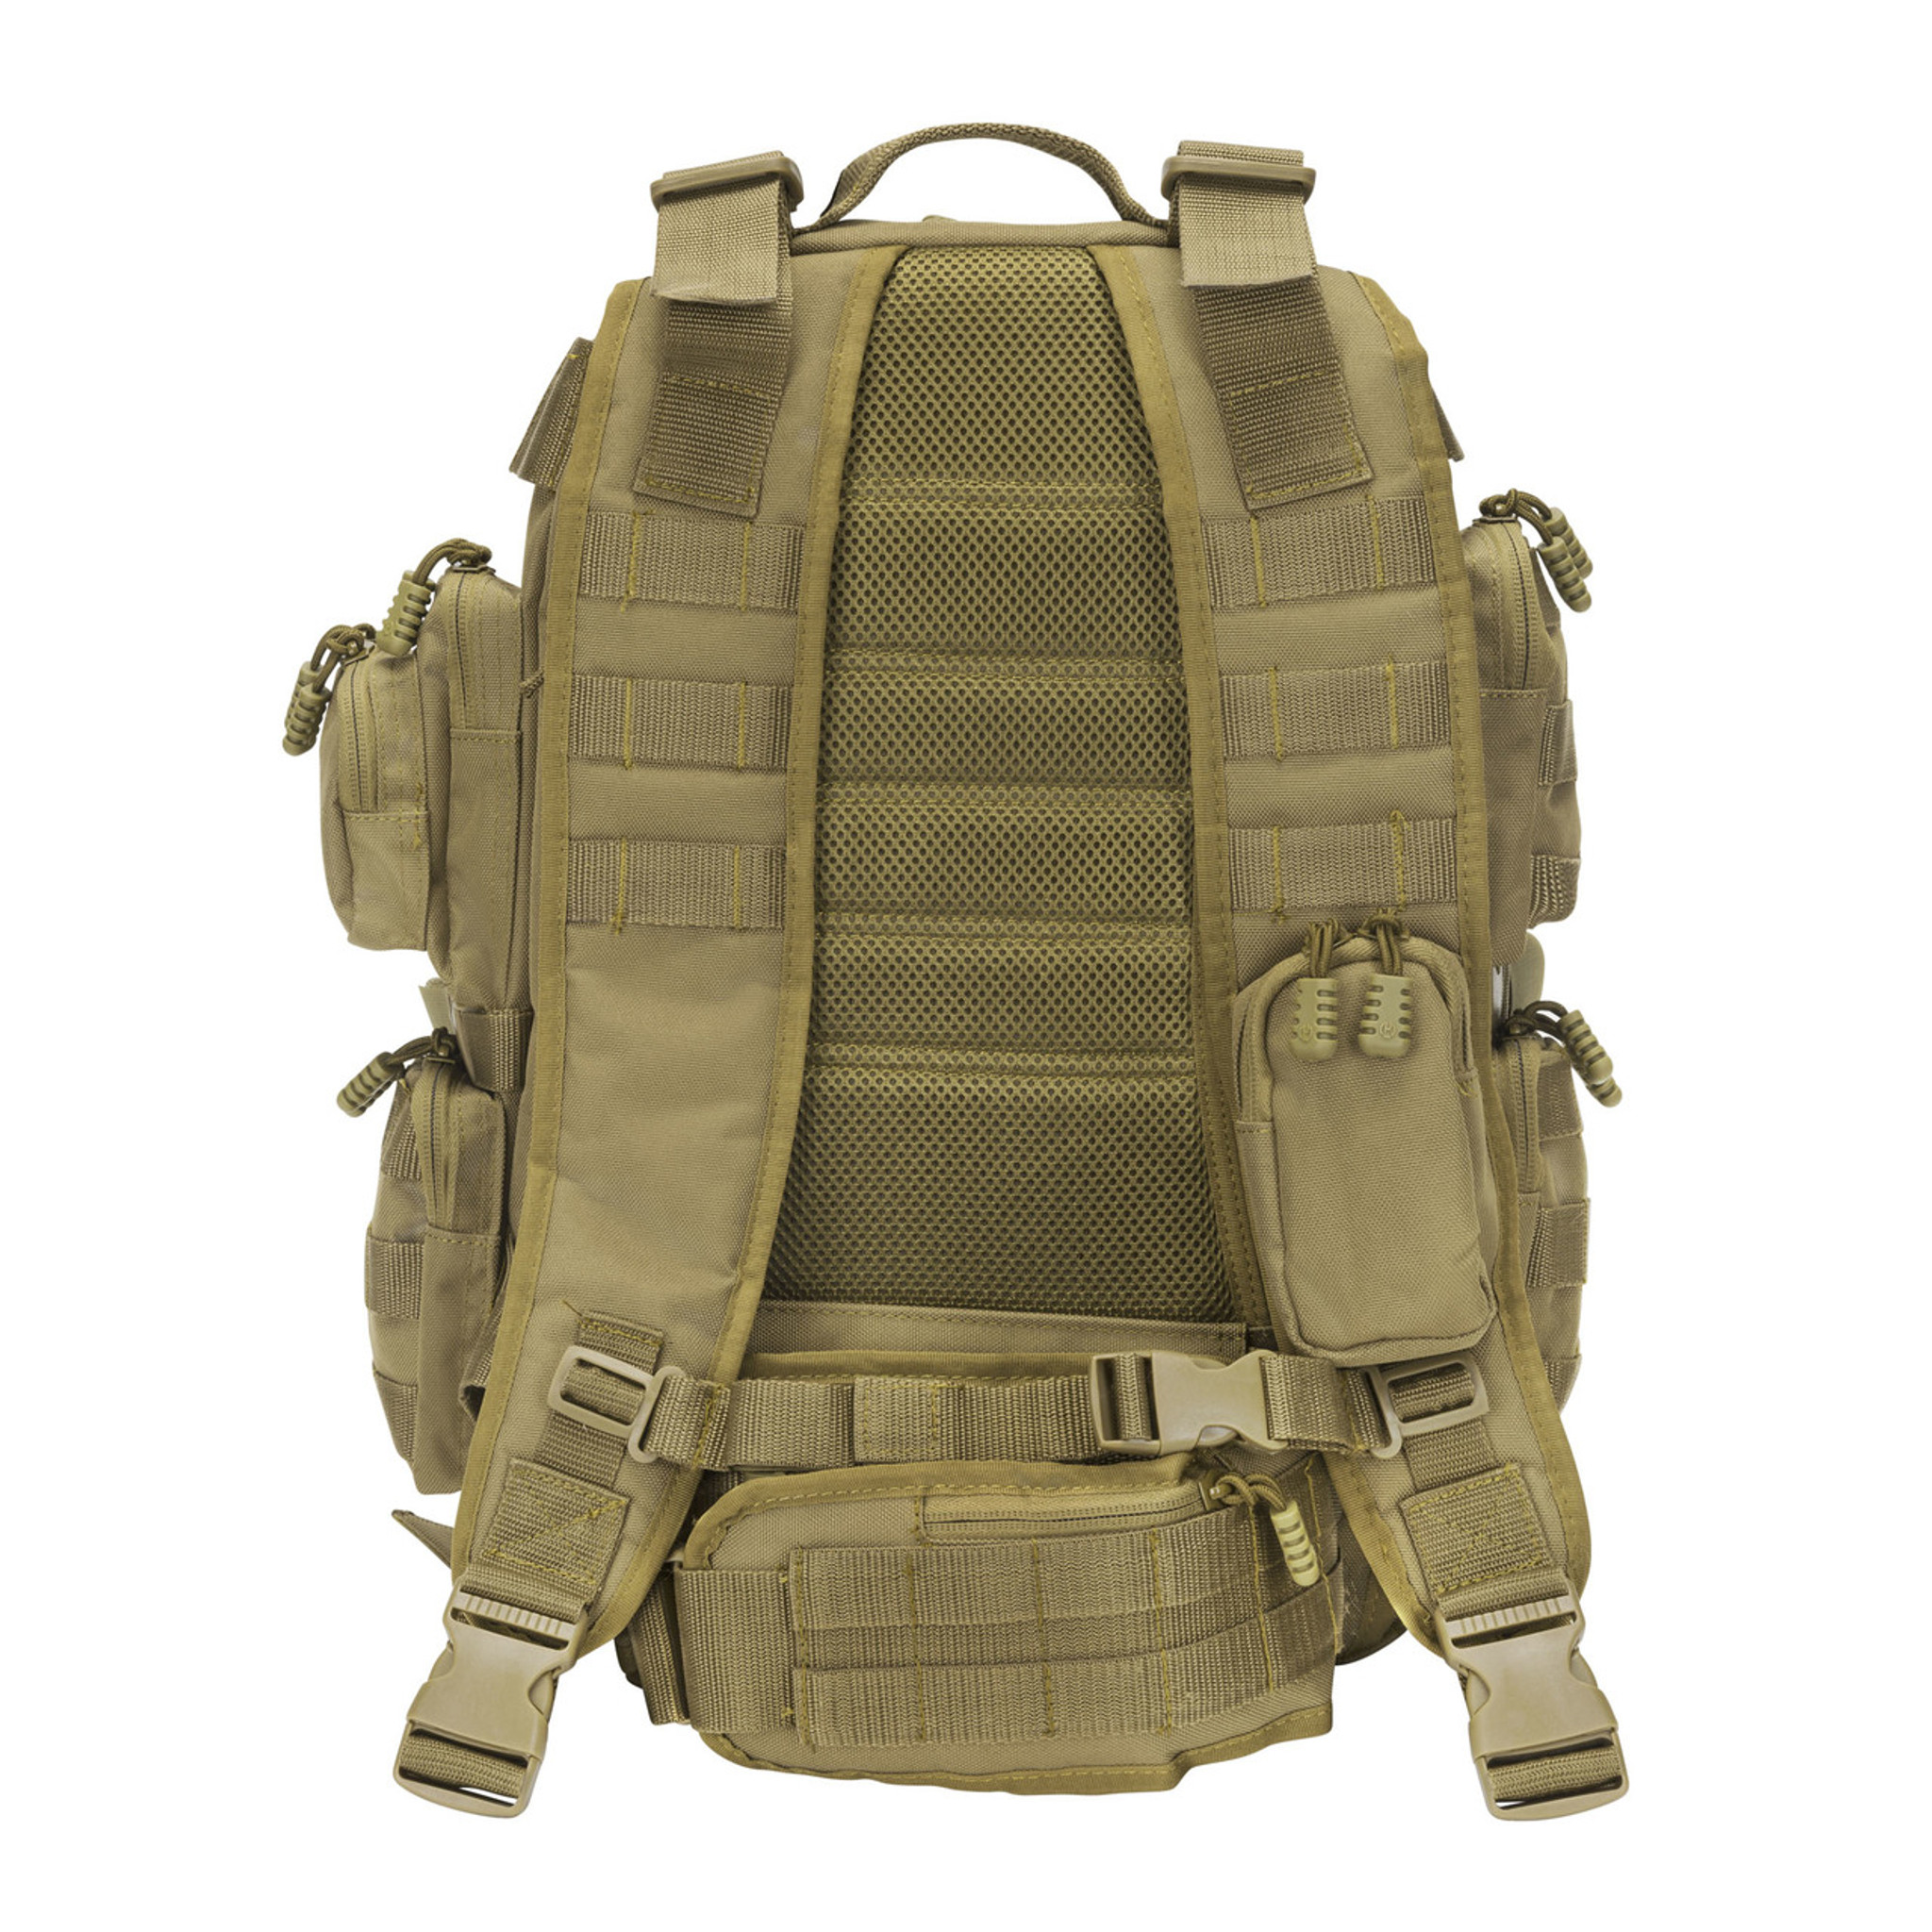 534cf3fe24 Padded back and backpack straps with mesh lining for comfort. Small  zippered pouch on one